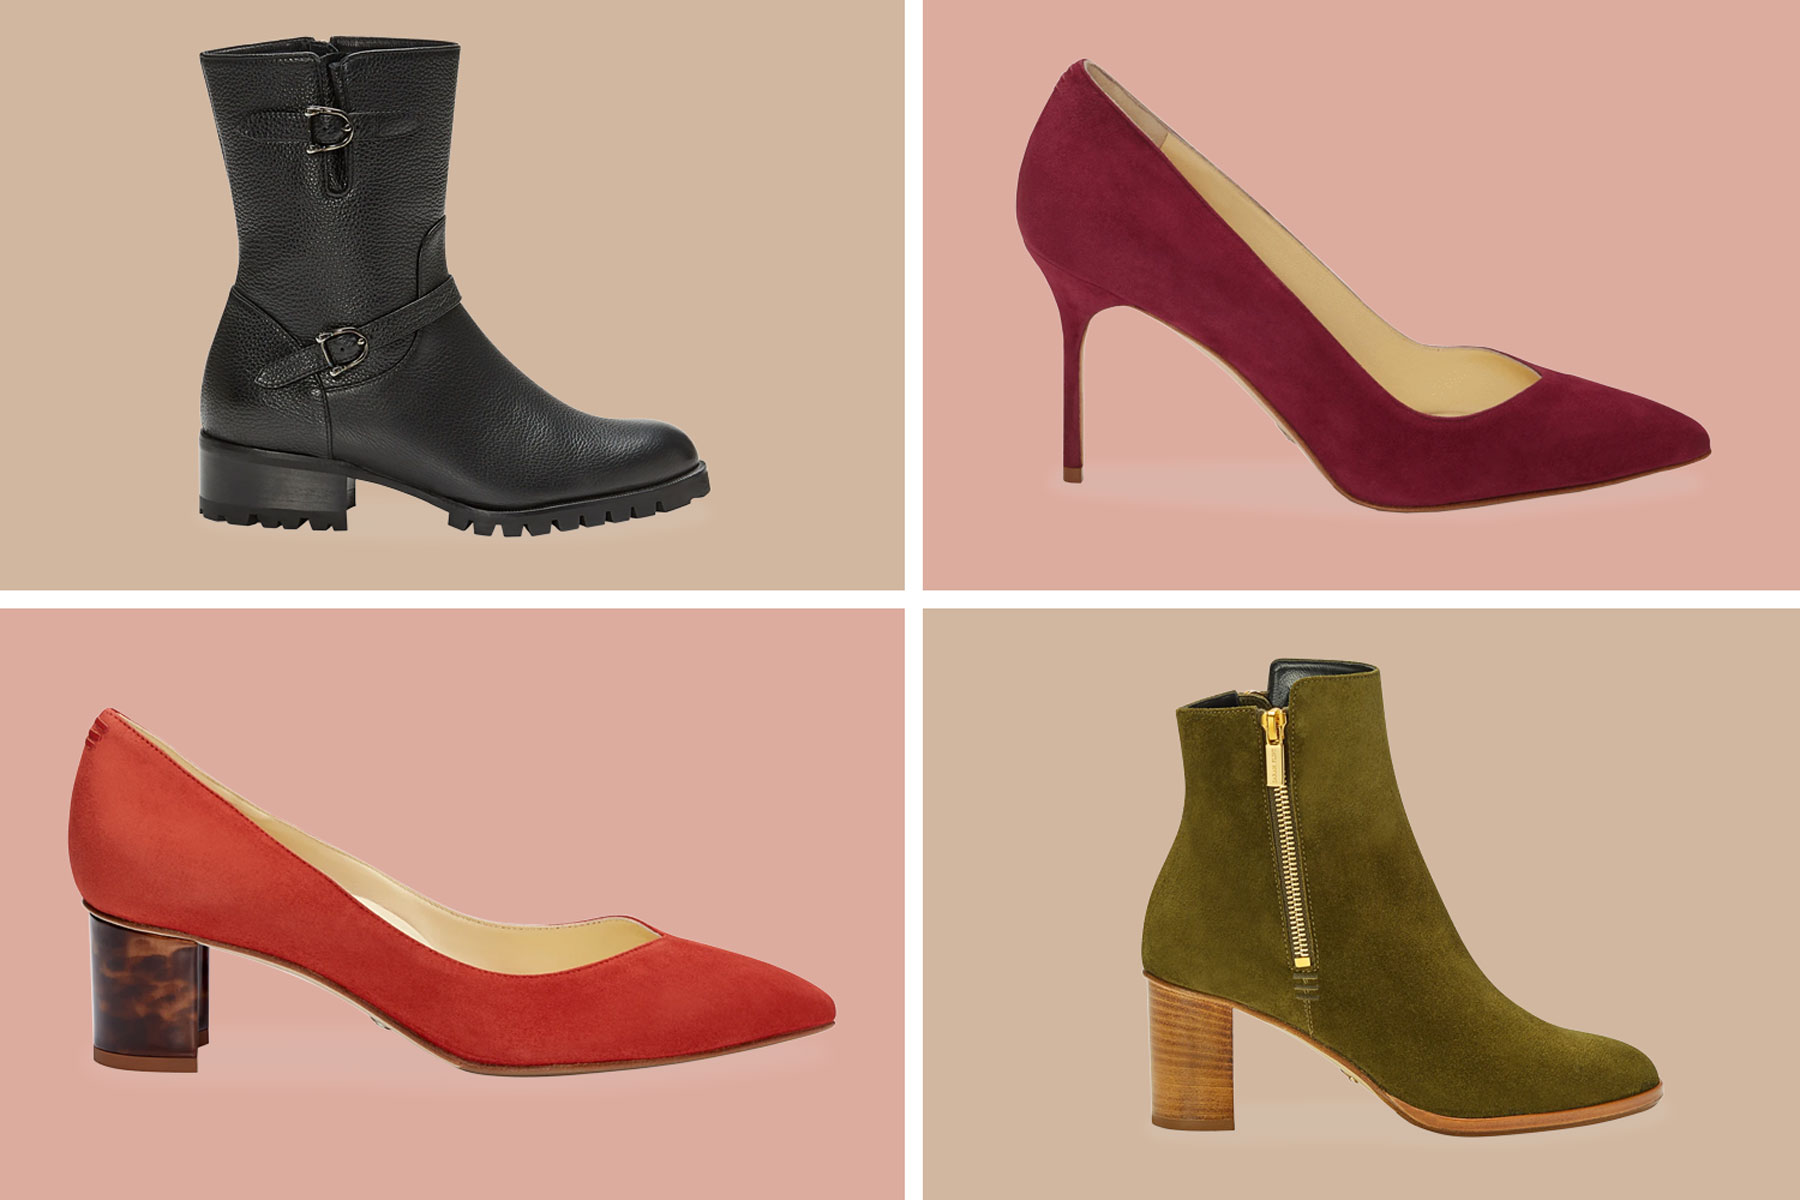 Four different shoe styles, boot, pumps, block heel, and heeled bootie